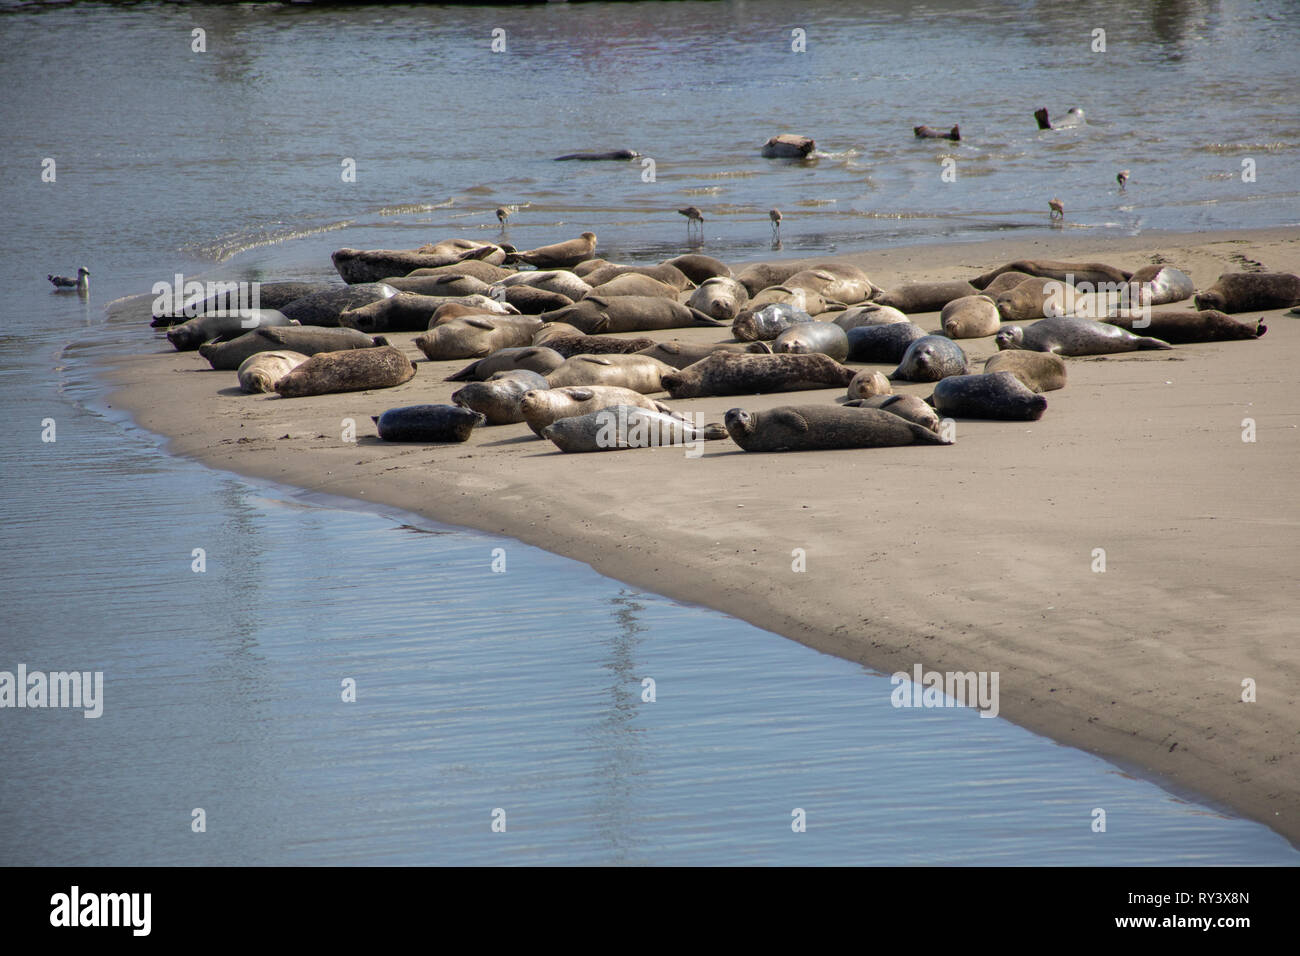 Seals lounging on the beach in monterey, california - Stock Image